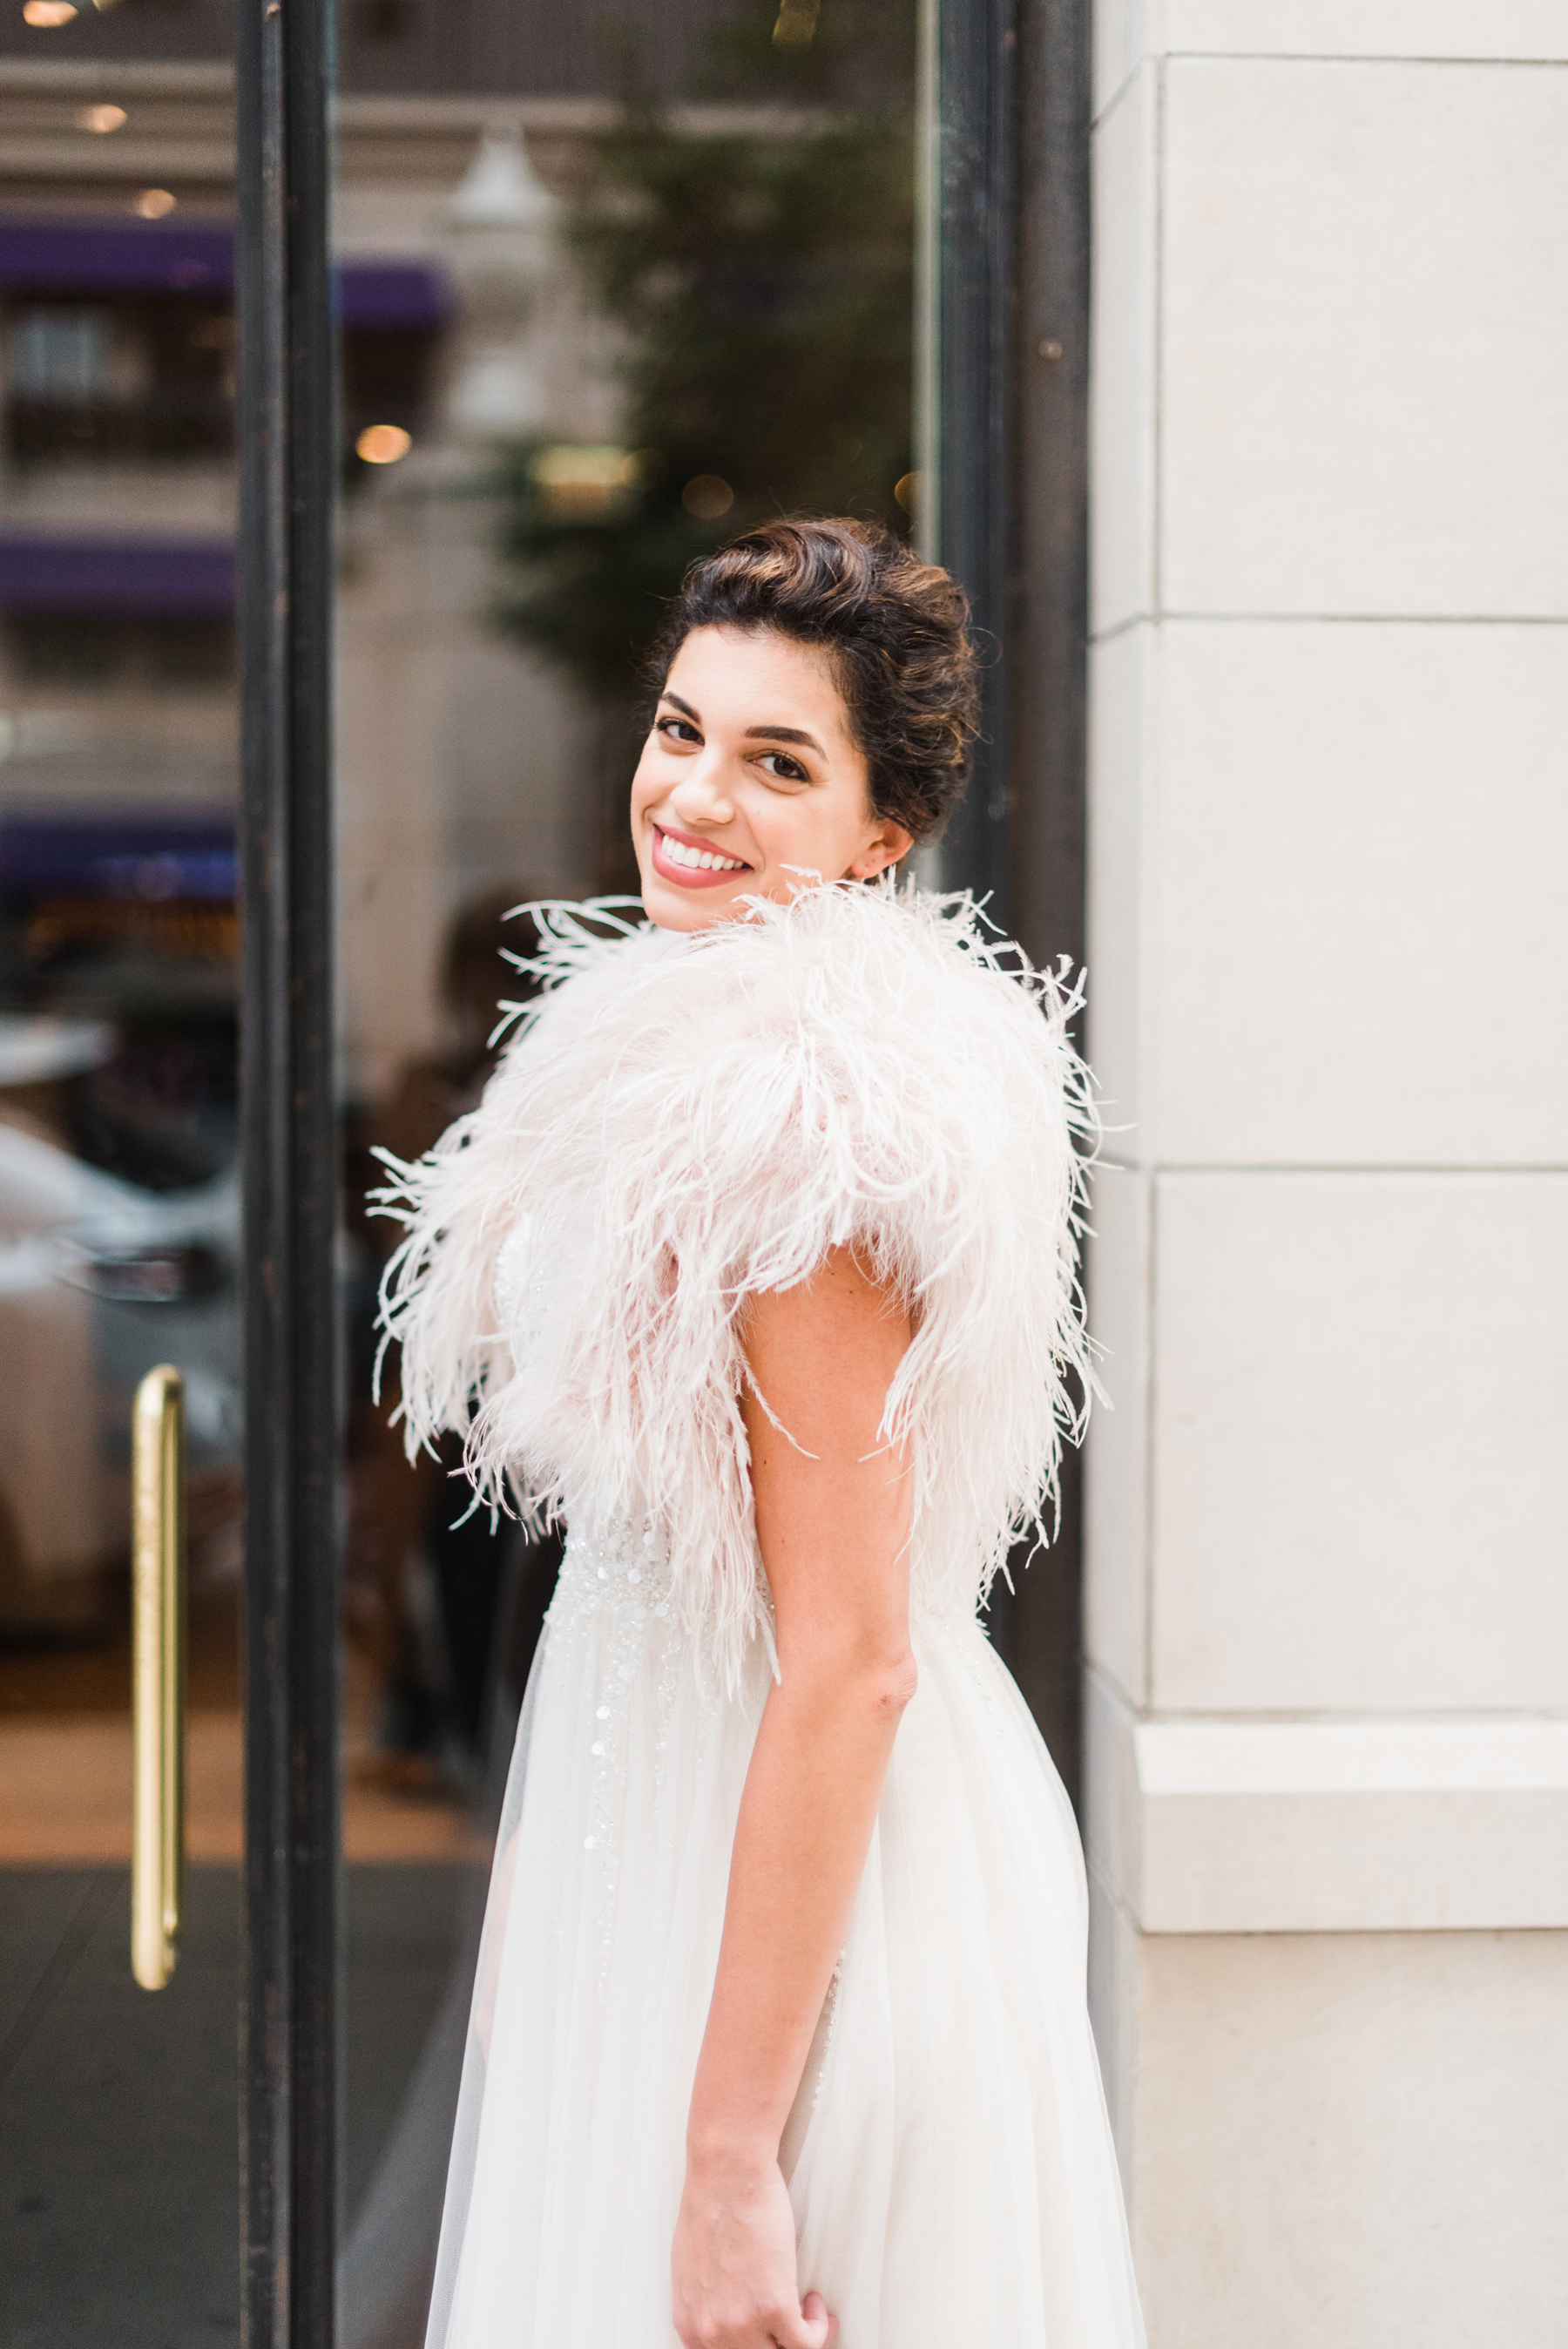 BHLDN Lakeshore in Love Danielle Heinson Photography (8)